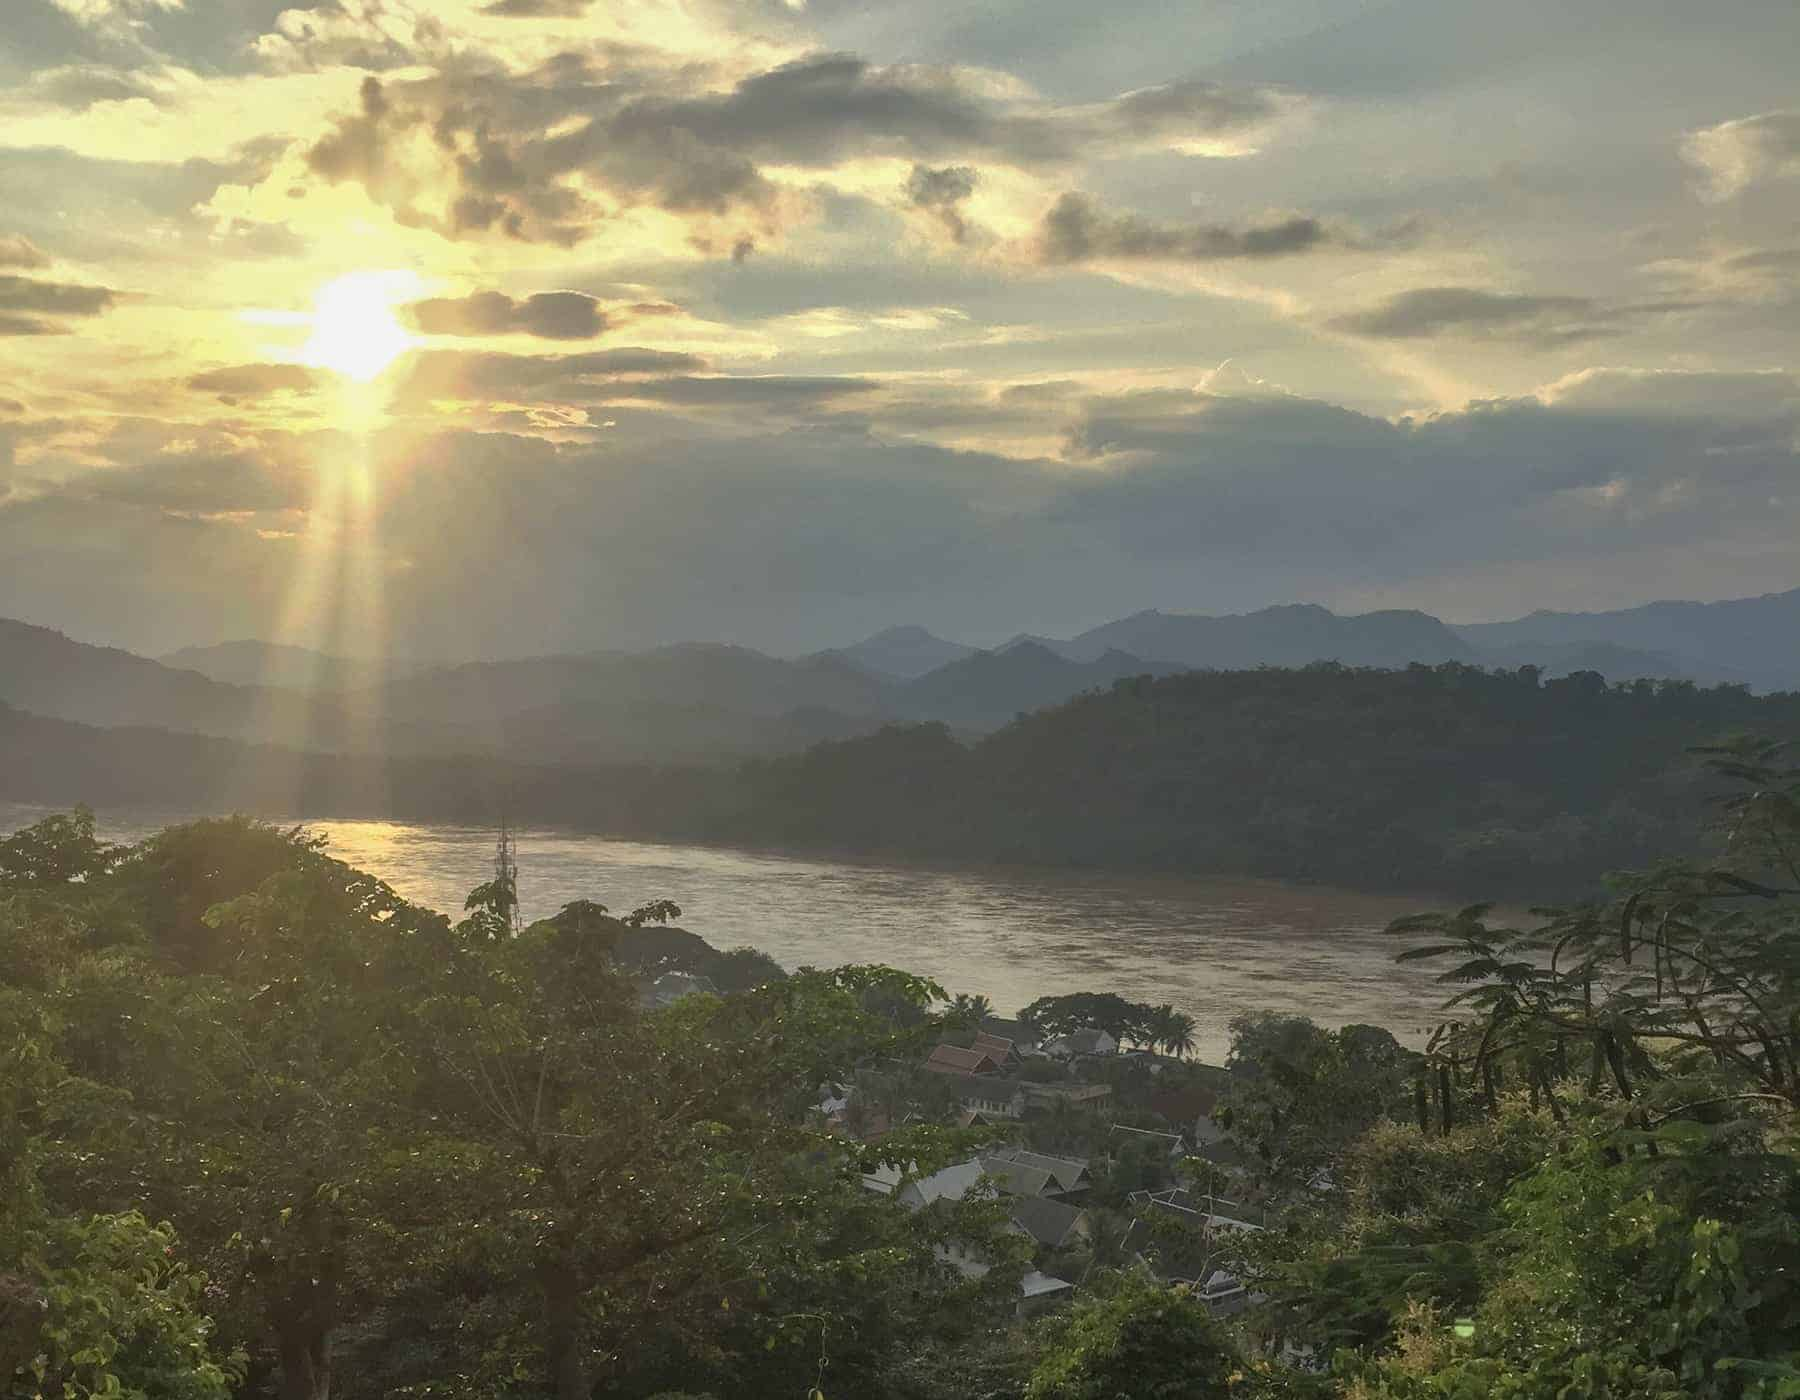 Views from Mount Phousi at sunset, Luang Prabang, Laos.